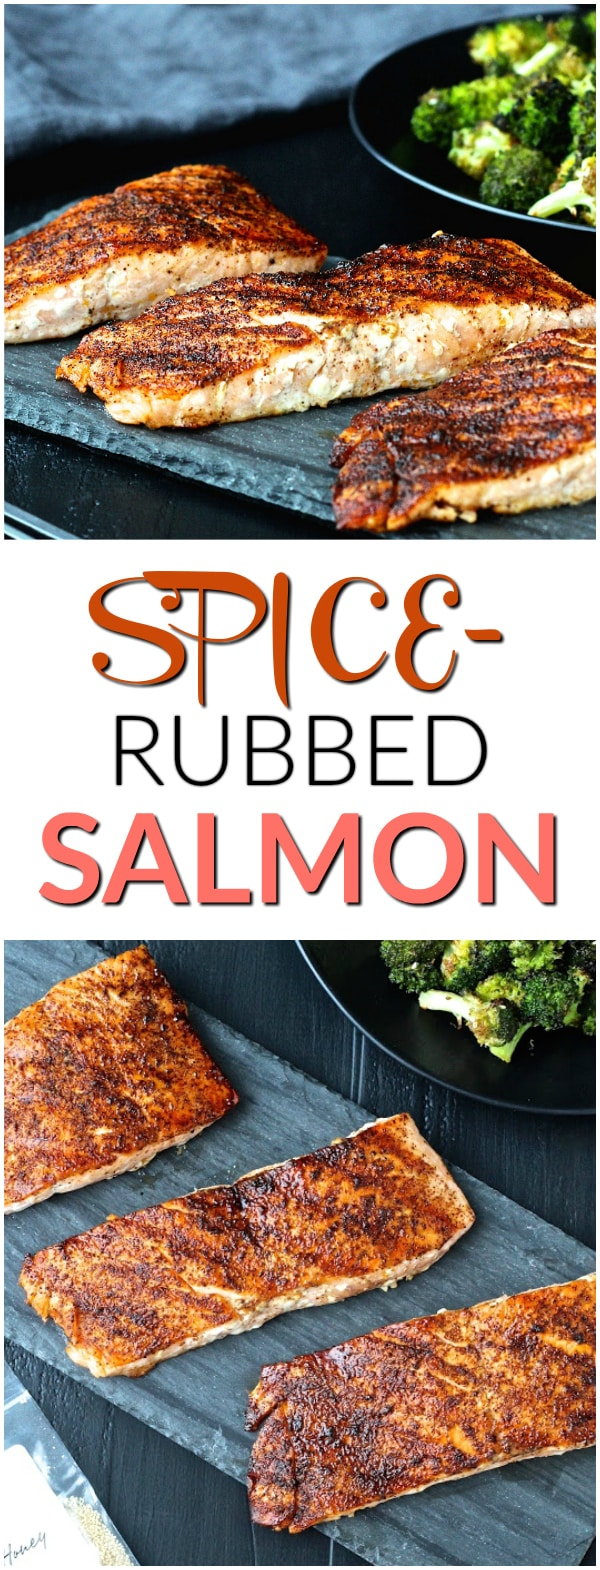 Spice-Rubbed Salmon   @foodiephysician